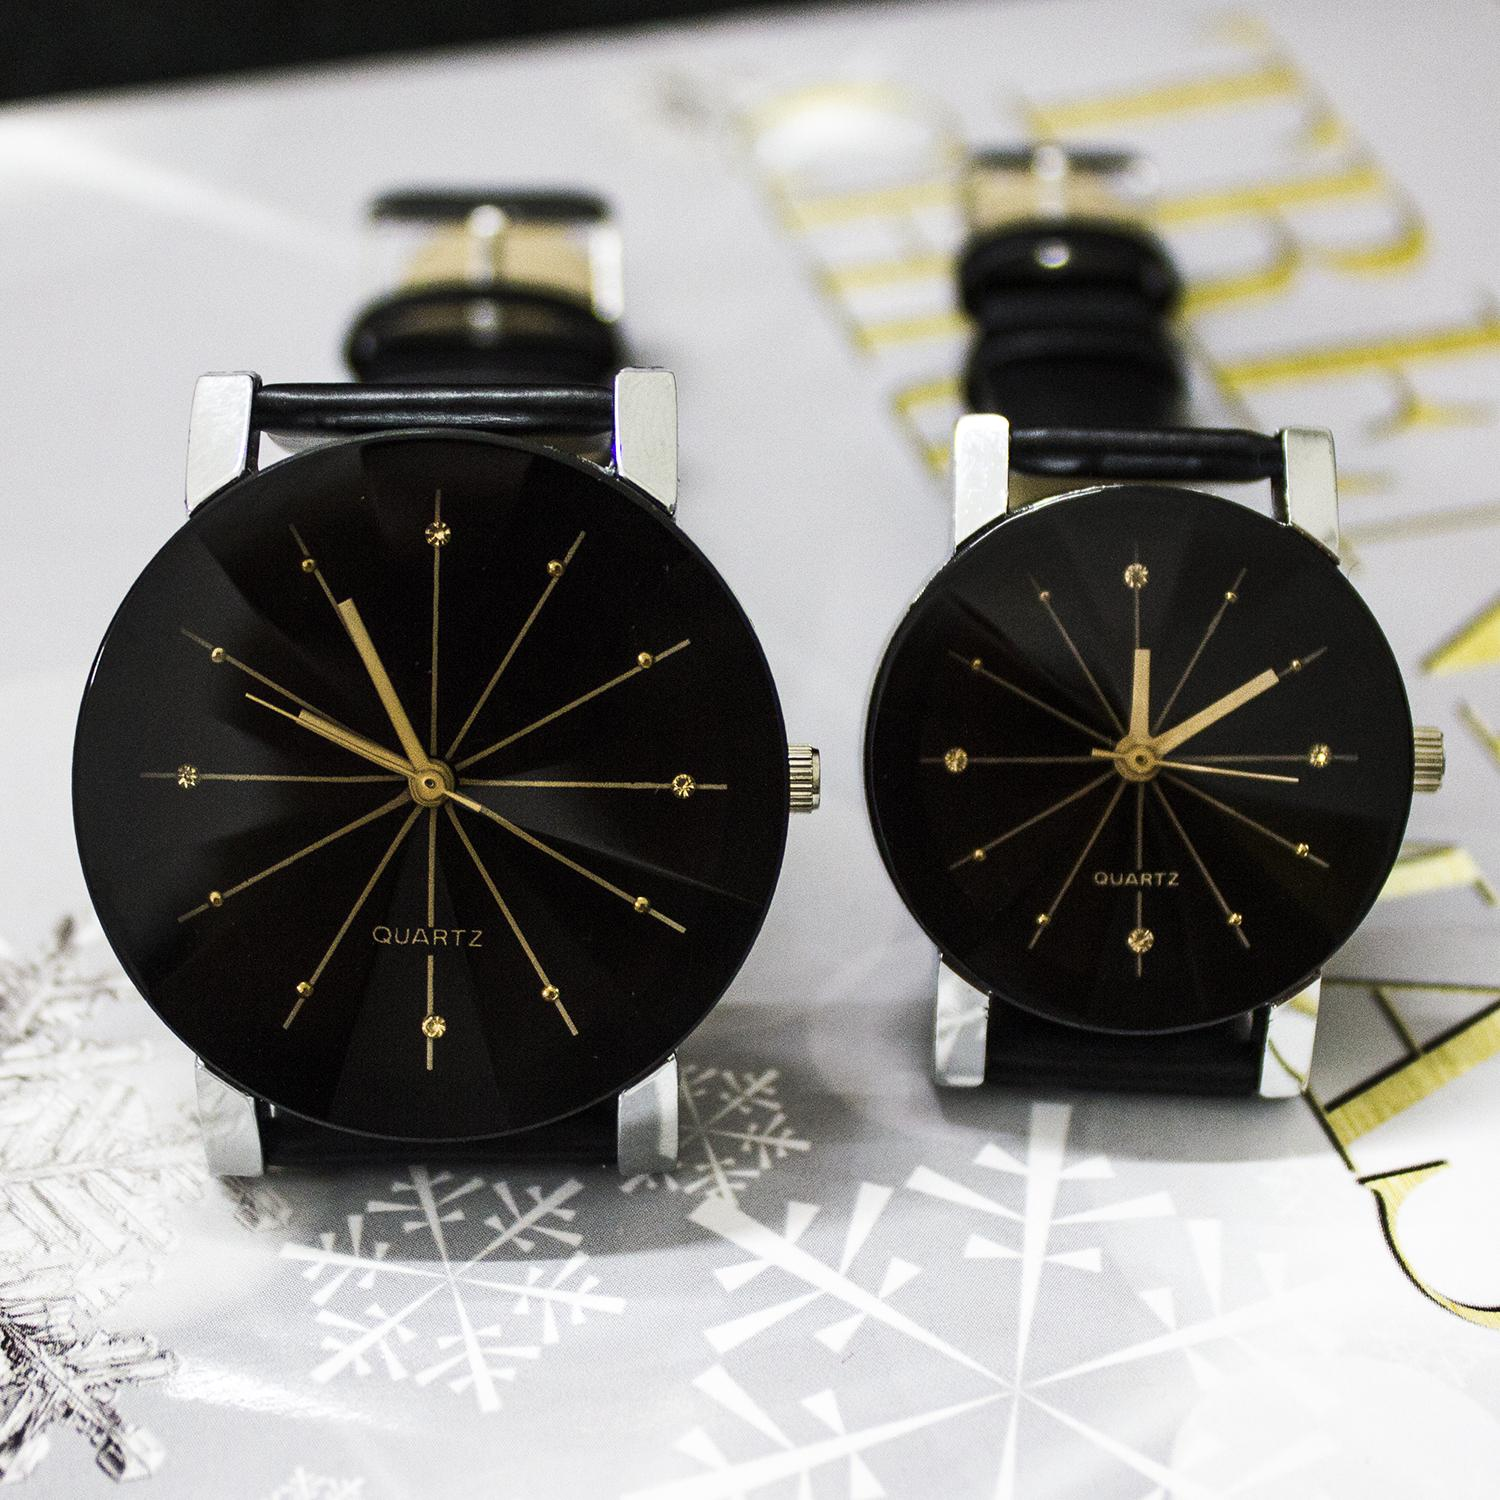 2015 New Arrival Fashion Casual Leather Watch for Lovers Character design Quartz Valentine Watches Asymmetrical Design Couple Watch